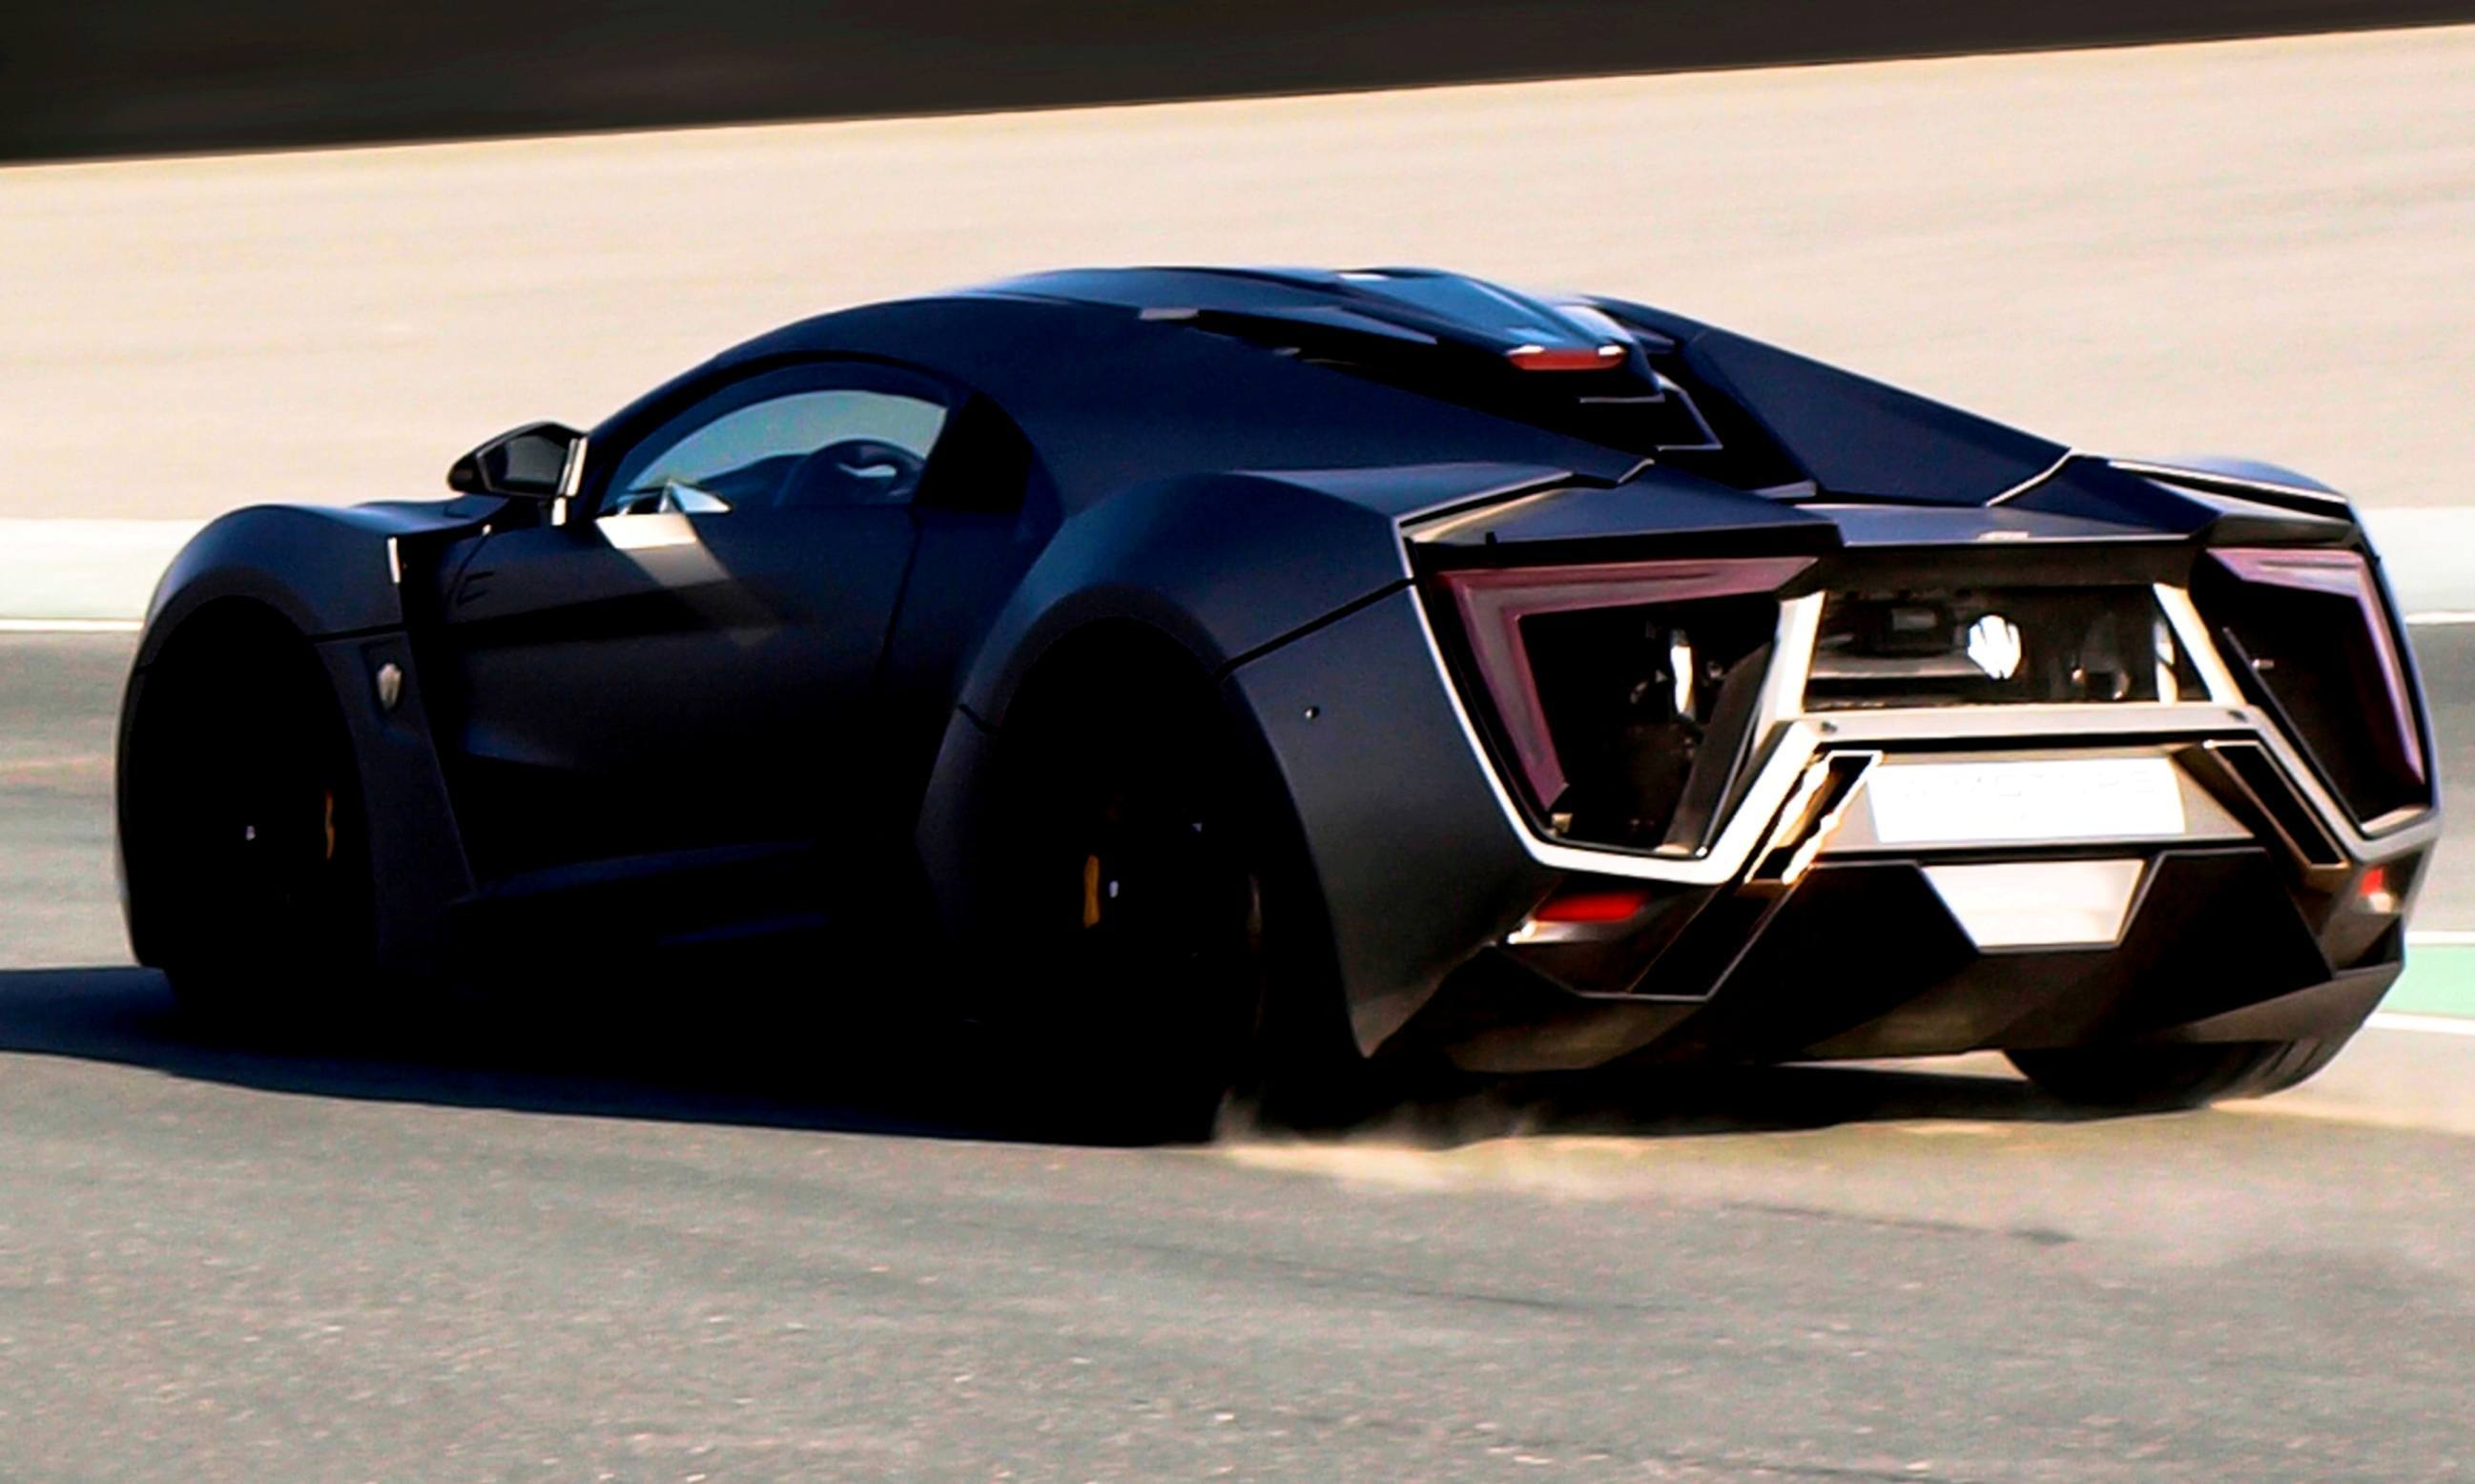 ... 2014 W Motors Lykan Hypersport In 40+ Amazing New Wallpapers, Including  MegaLux Interior 23 ...